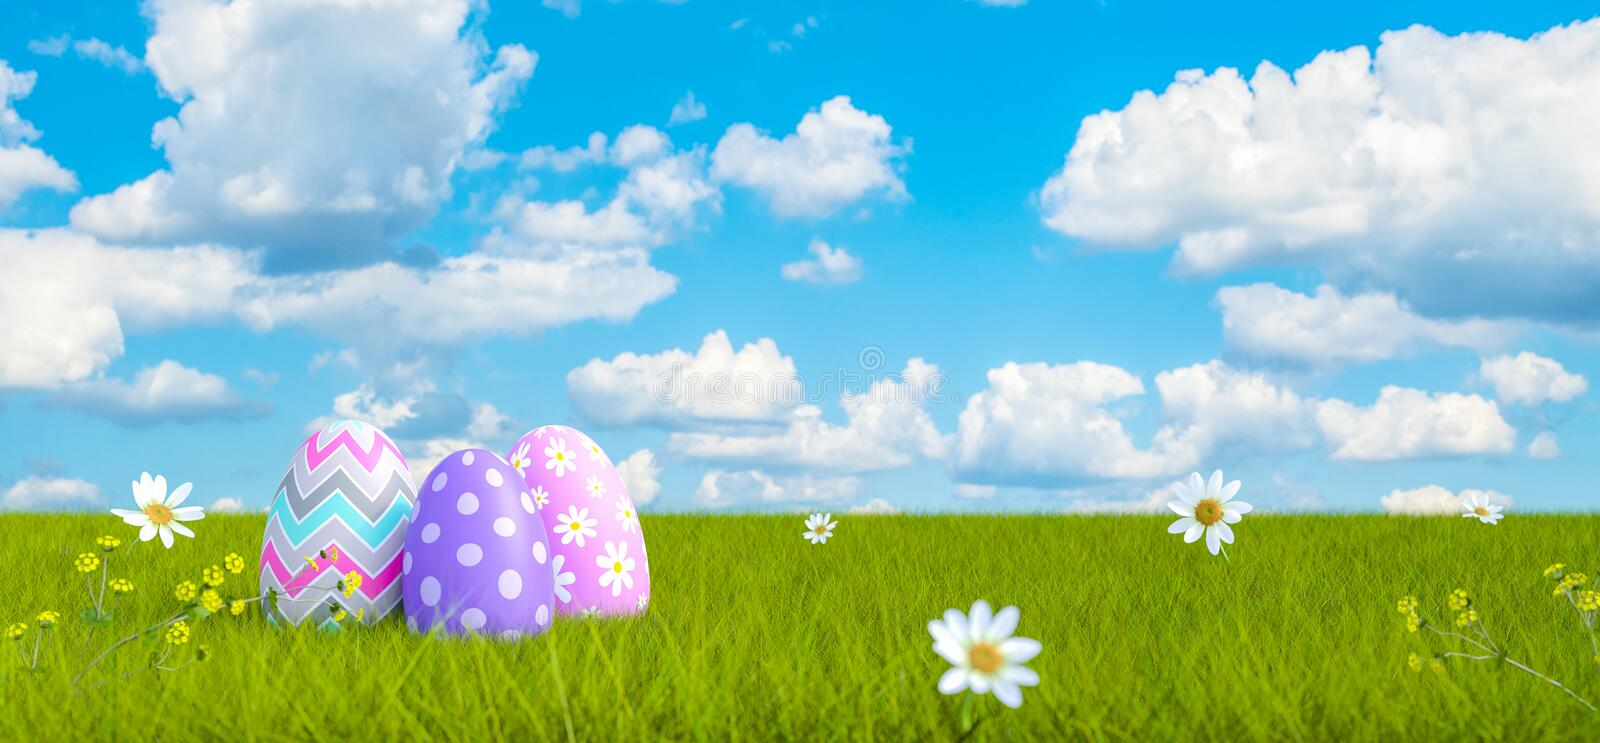 Colorful Decorated Easter Eggs on Green Meadow with Beautiful Blue Sky Clouds Background 3d render stock illustration